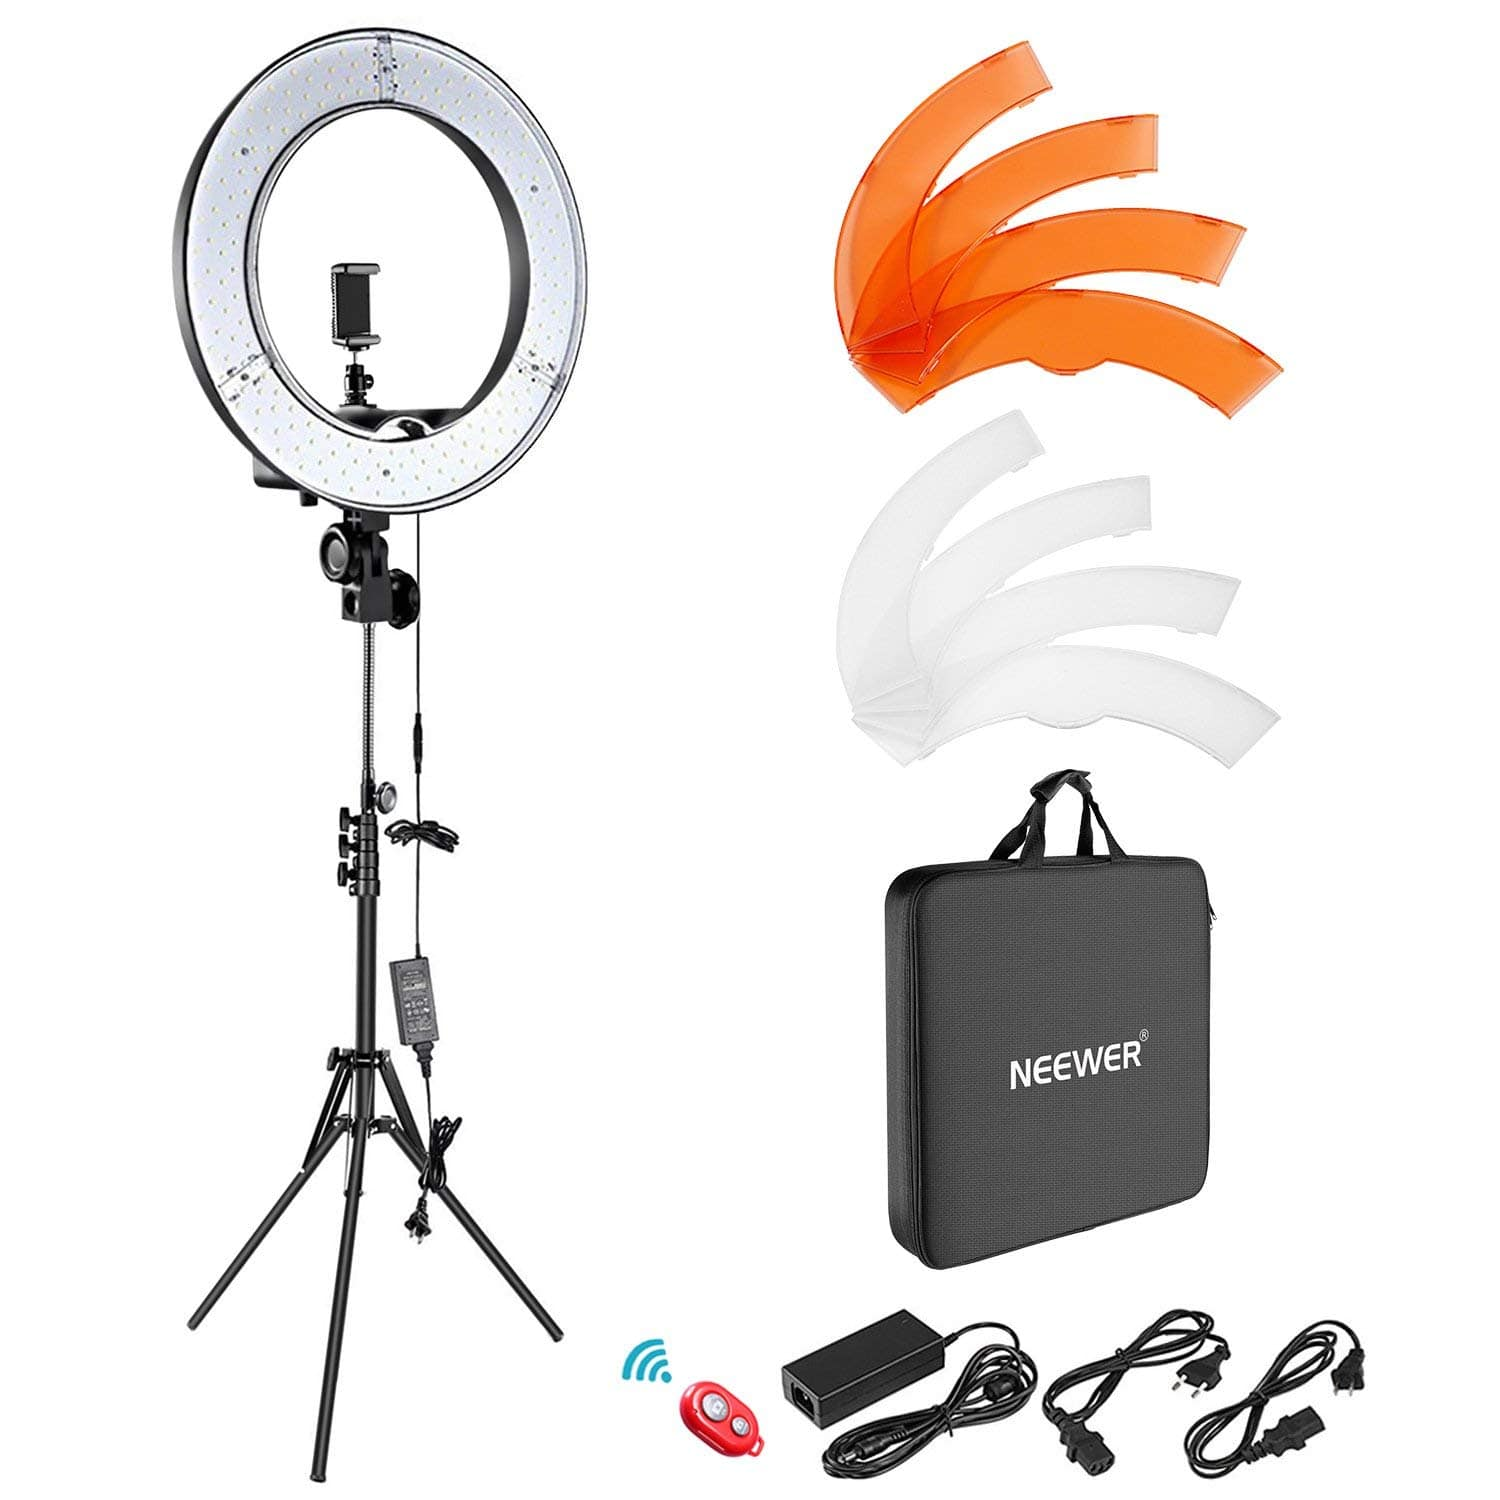 Camera Photo Video Lighting Kit 55W 5500K Dimmable LED Ring Light for $79.99 @Amazon